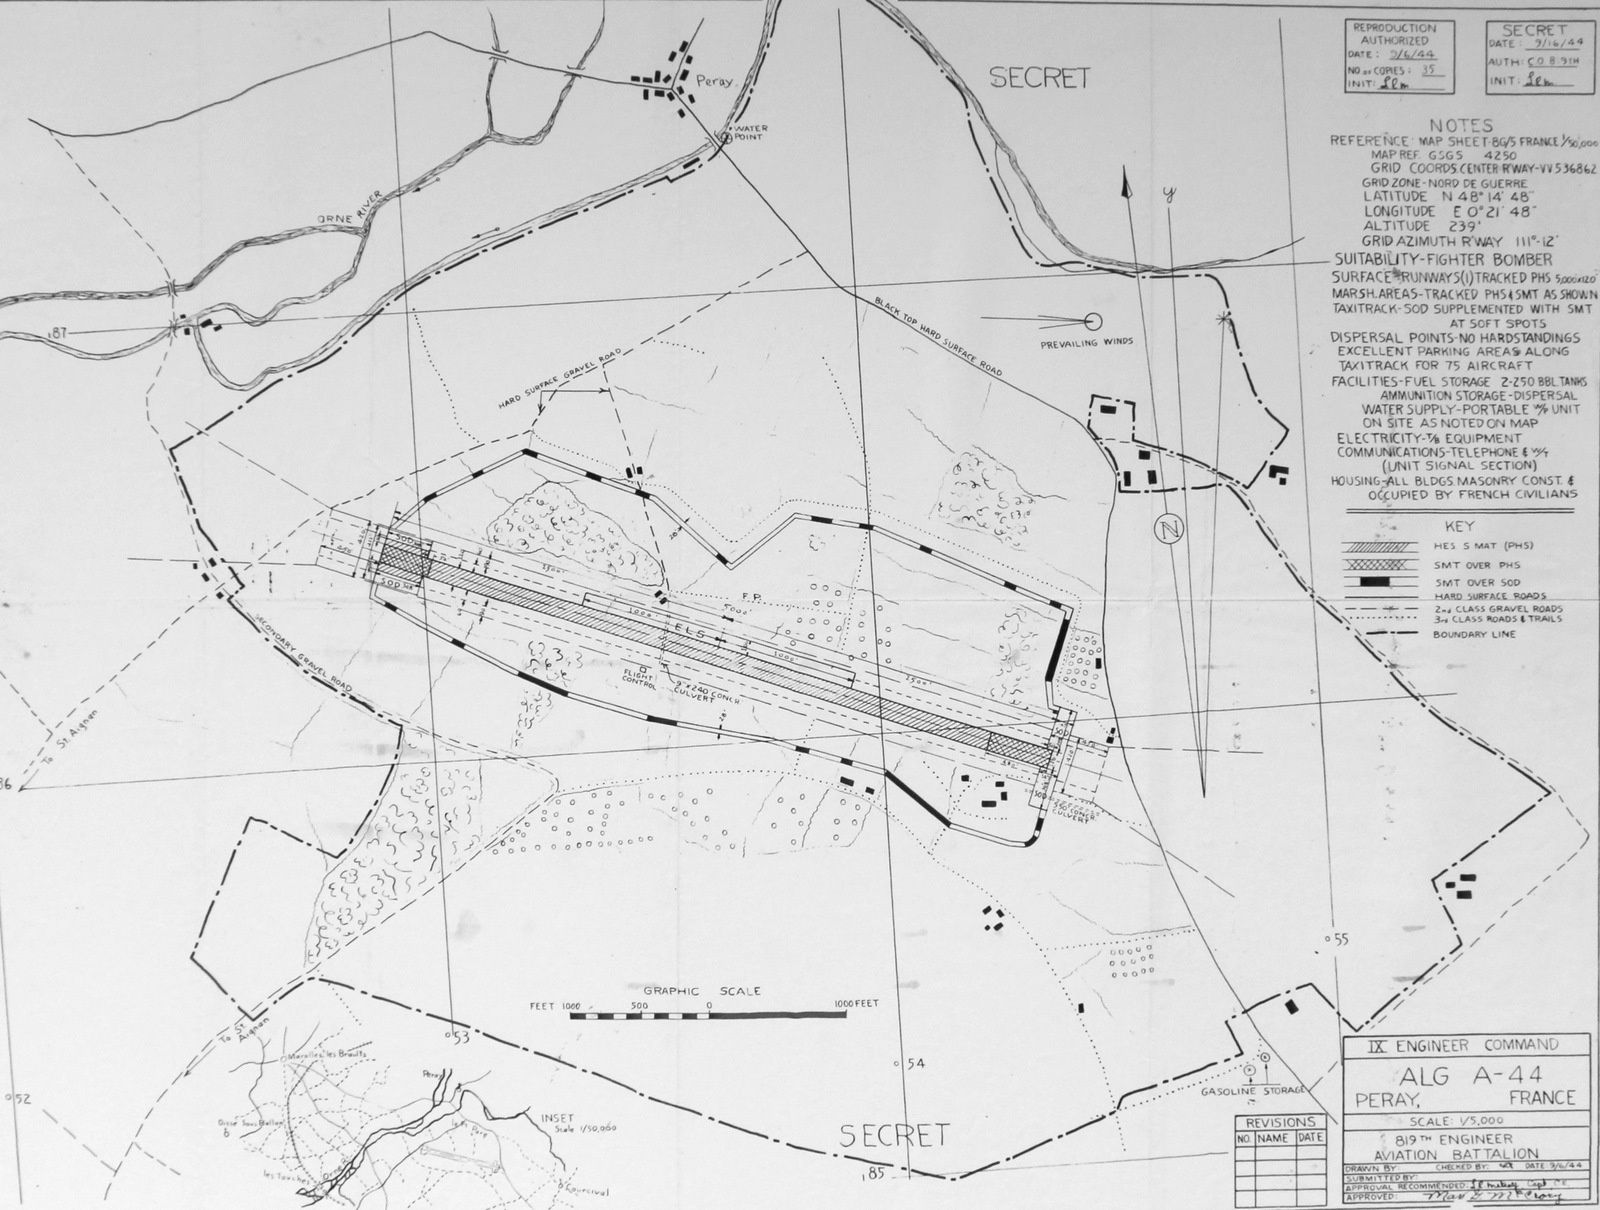 Le plan américain du 819th Engineer Aviation Battalion rélaisé en 1944.